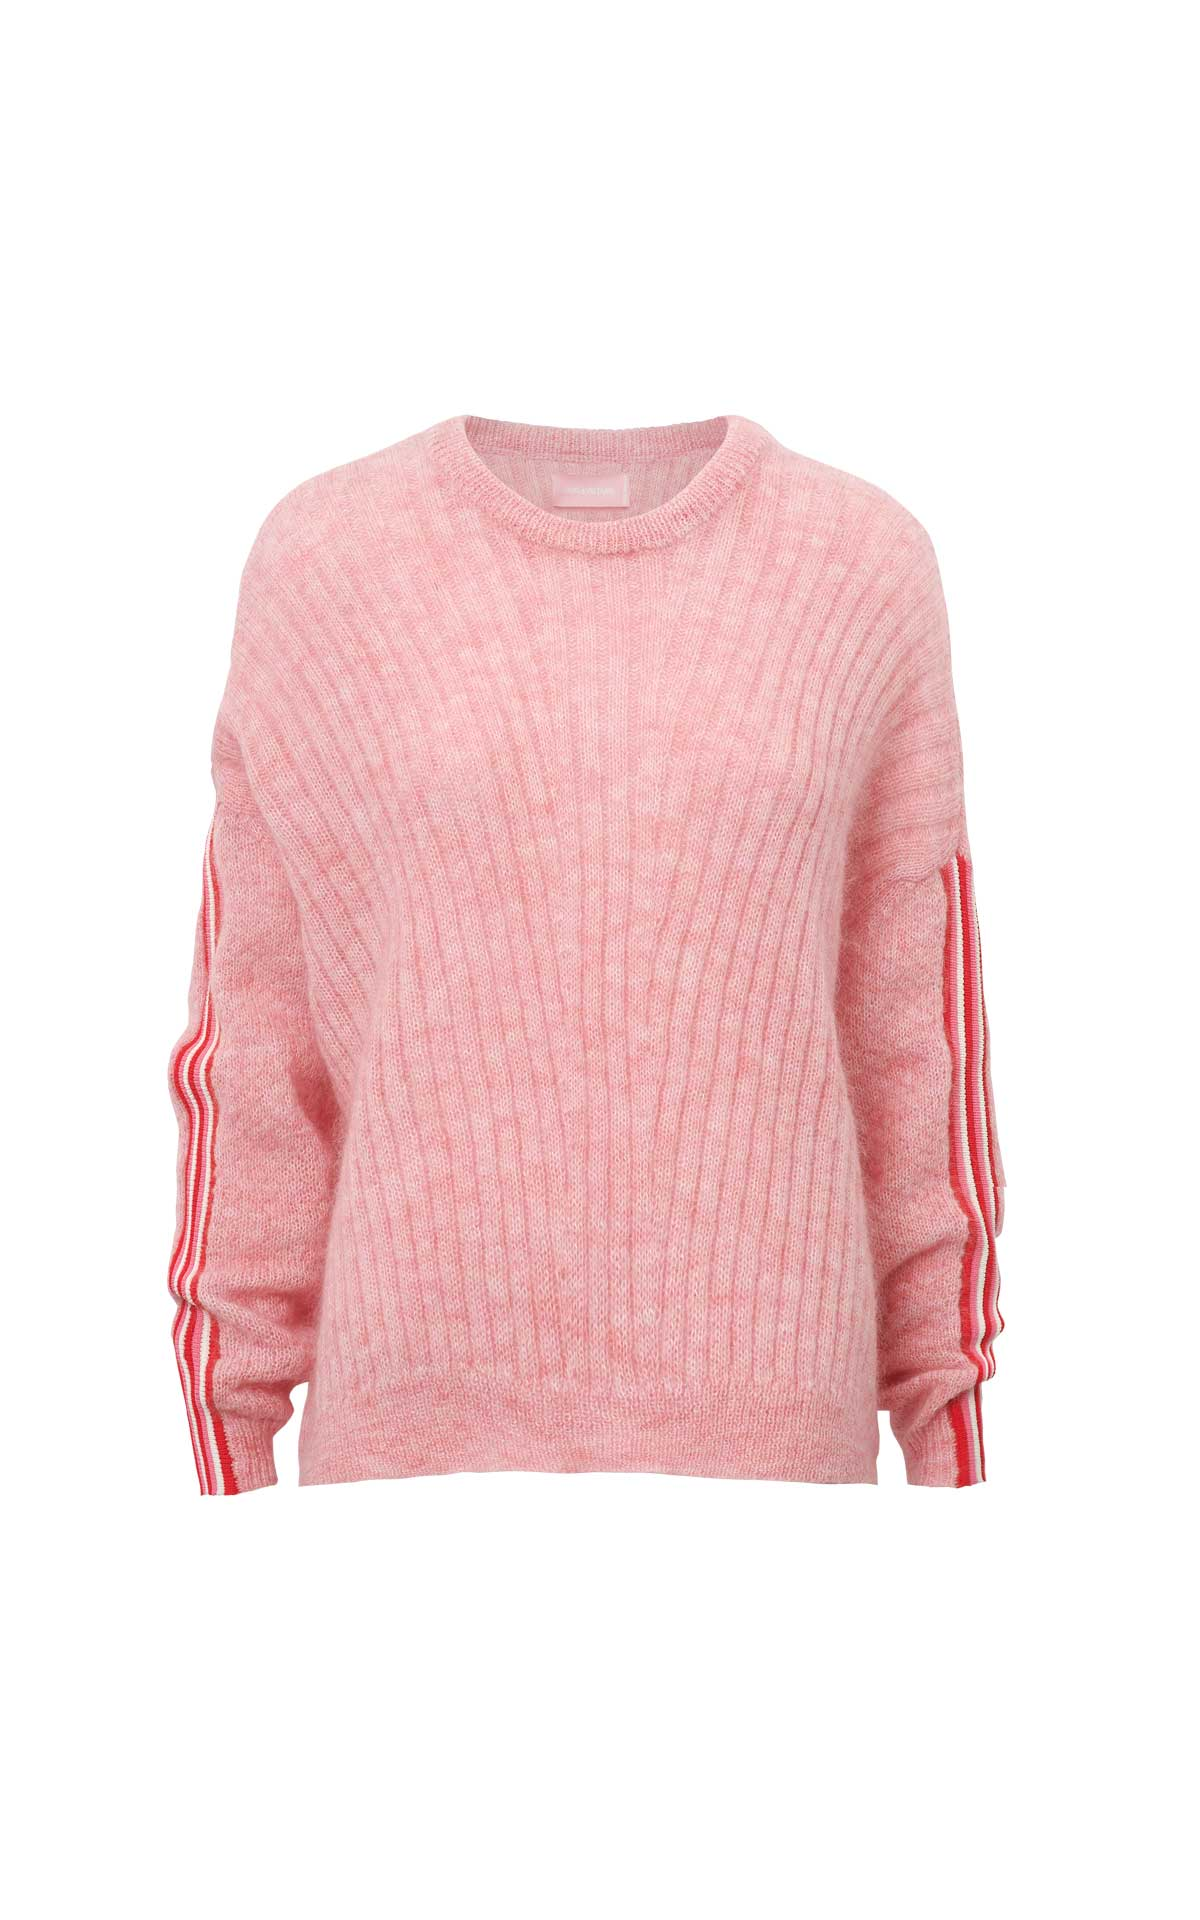 Pink striped sleeve sweater Zadig & Voltaire